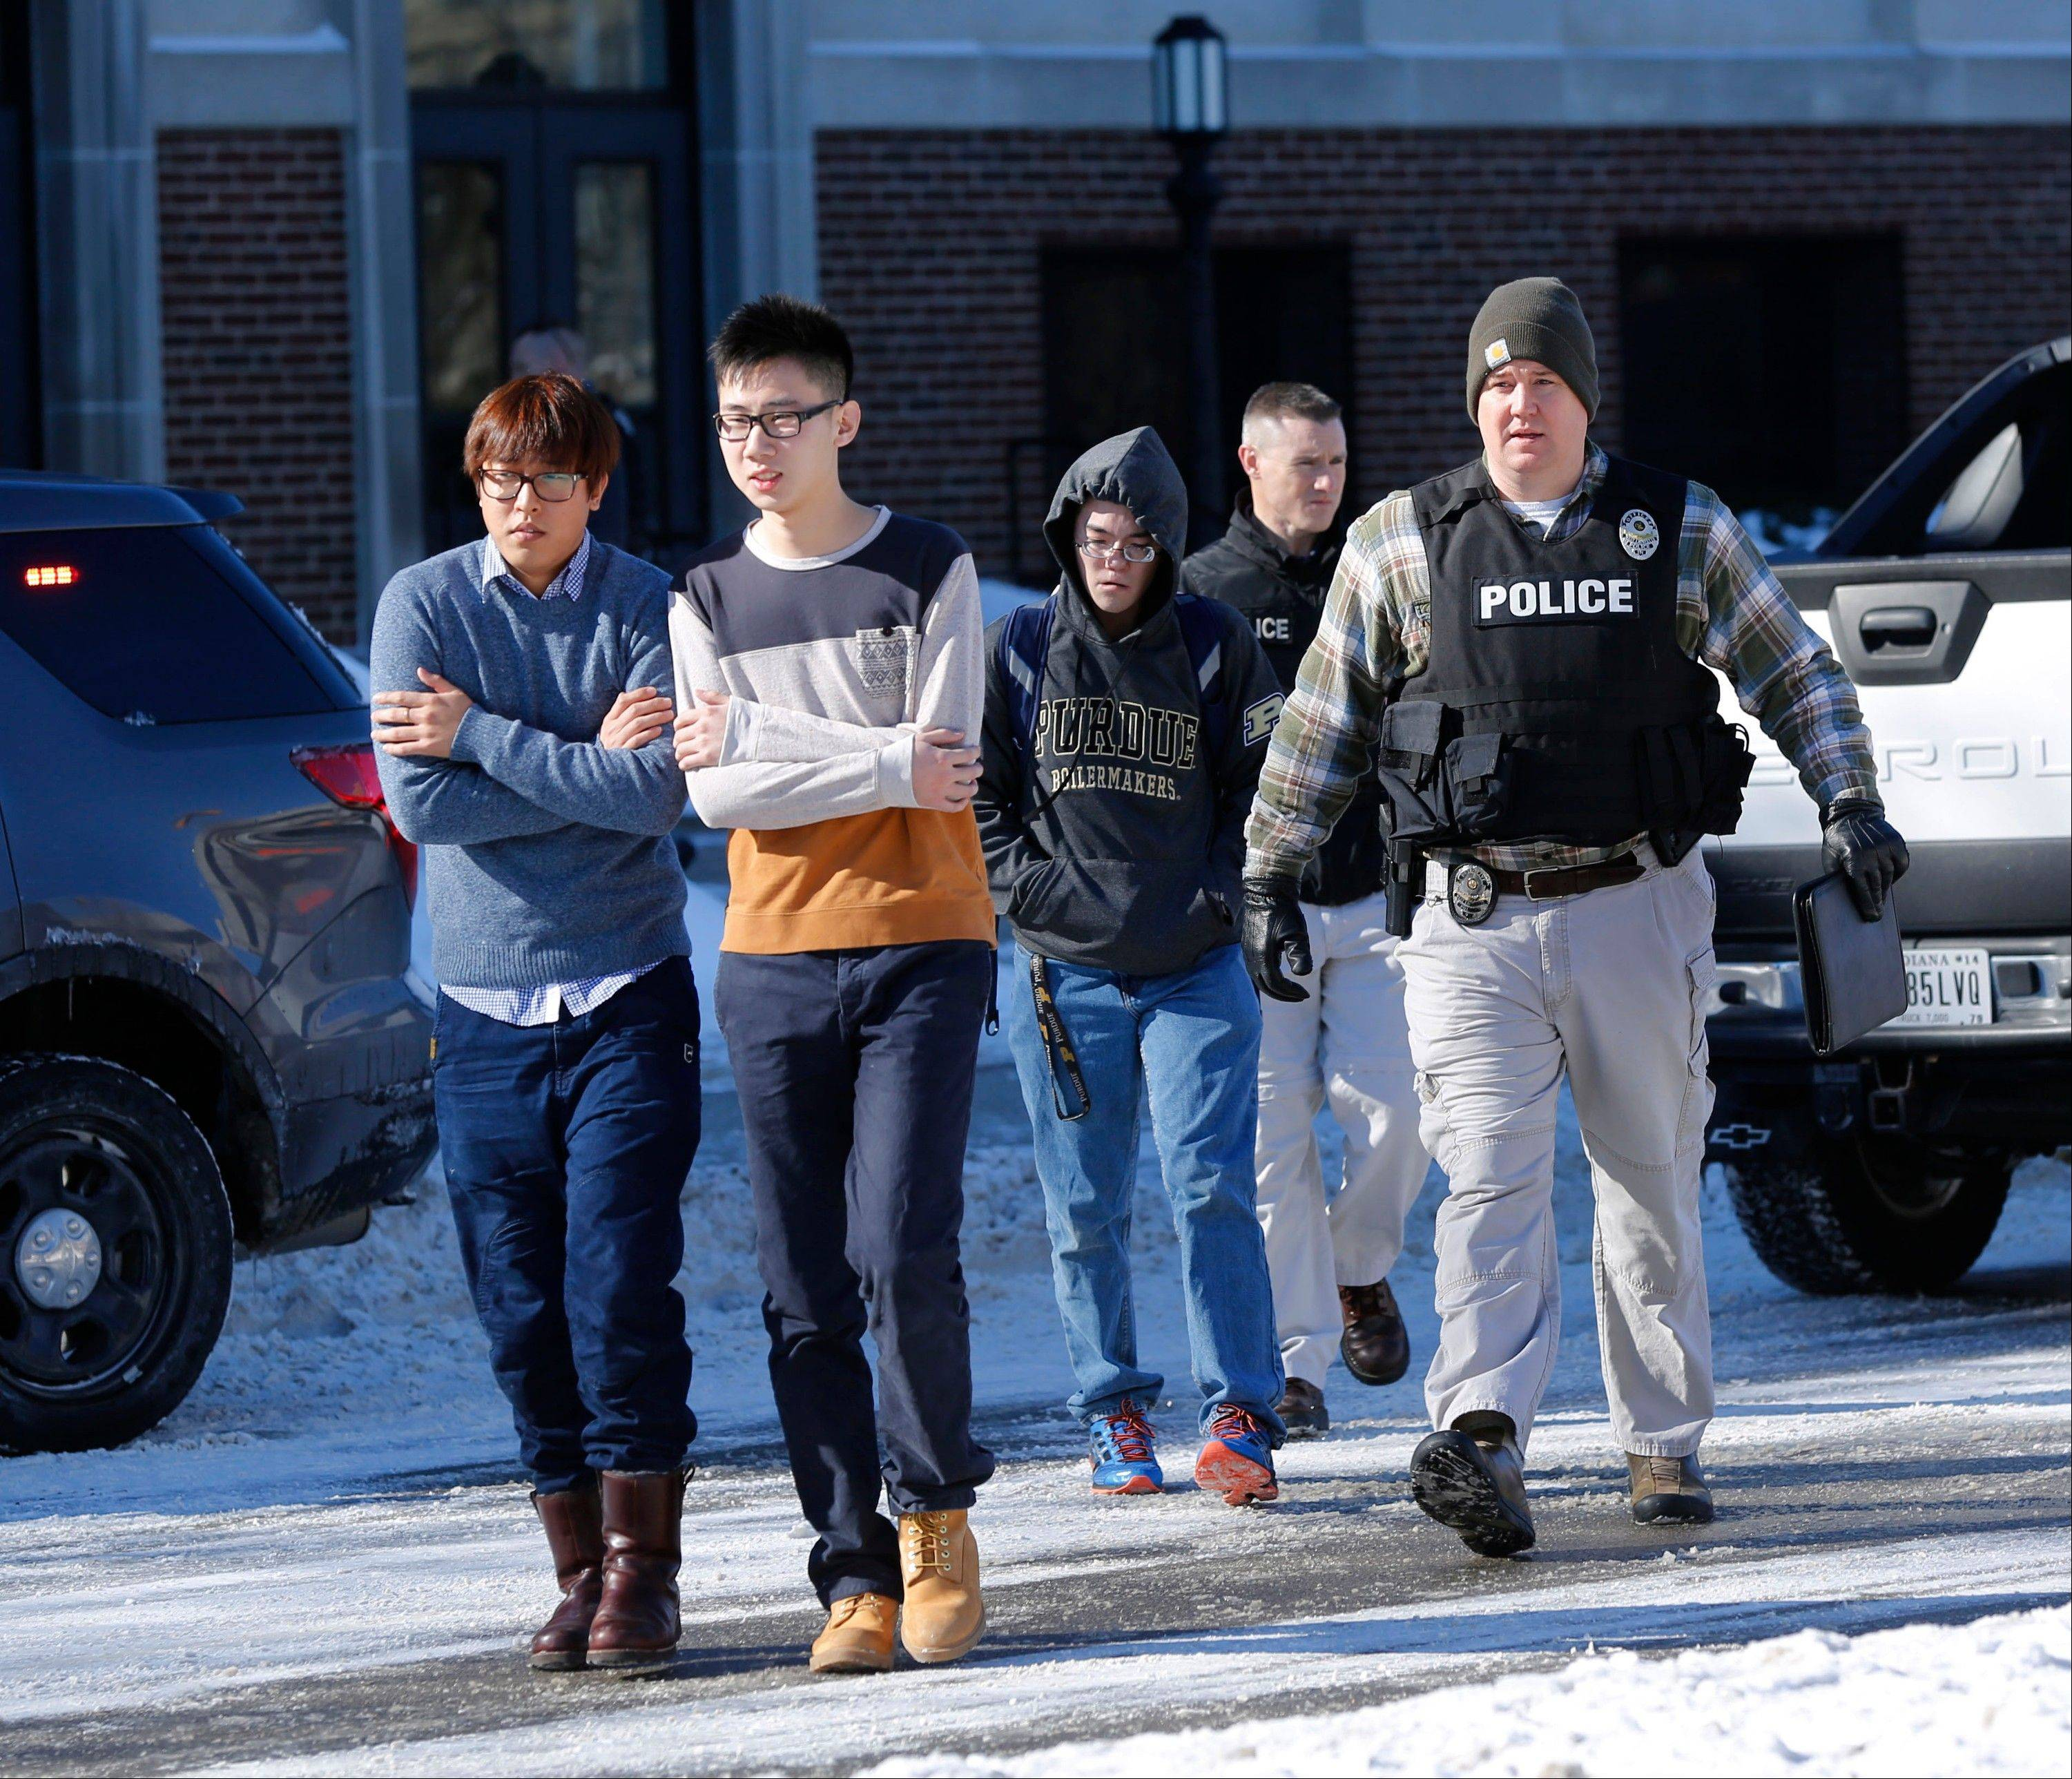 Police evacuate students from the Electrical Engineering building after shots were fired Tuesday on the campus of Purdue University in West Lafayette, Ind. Officials at Purdue University say one person was killed in a shooting at the campus classroom building.